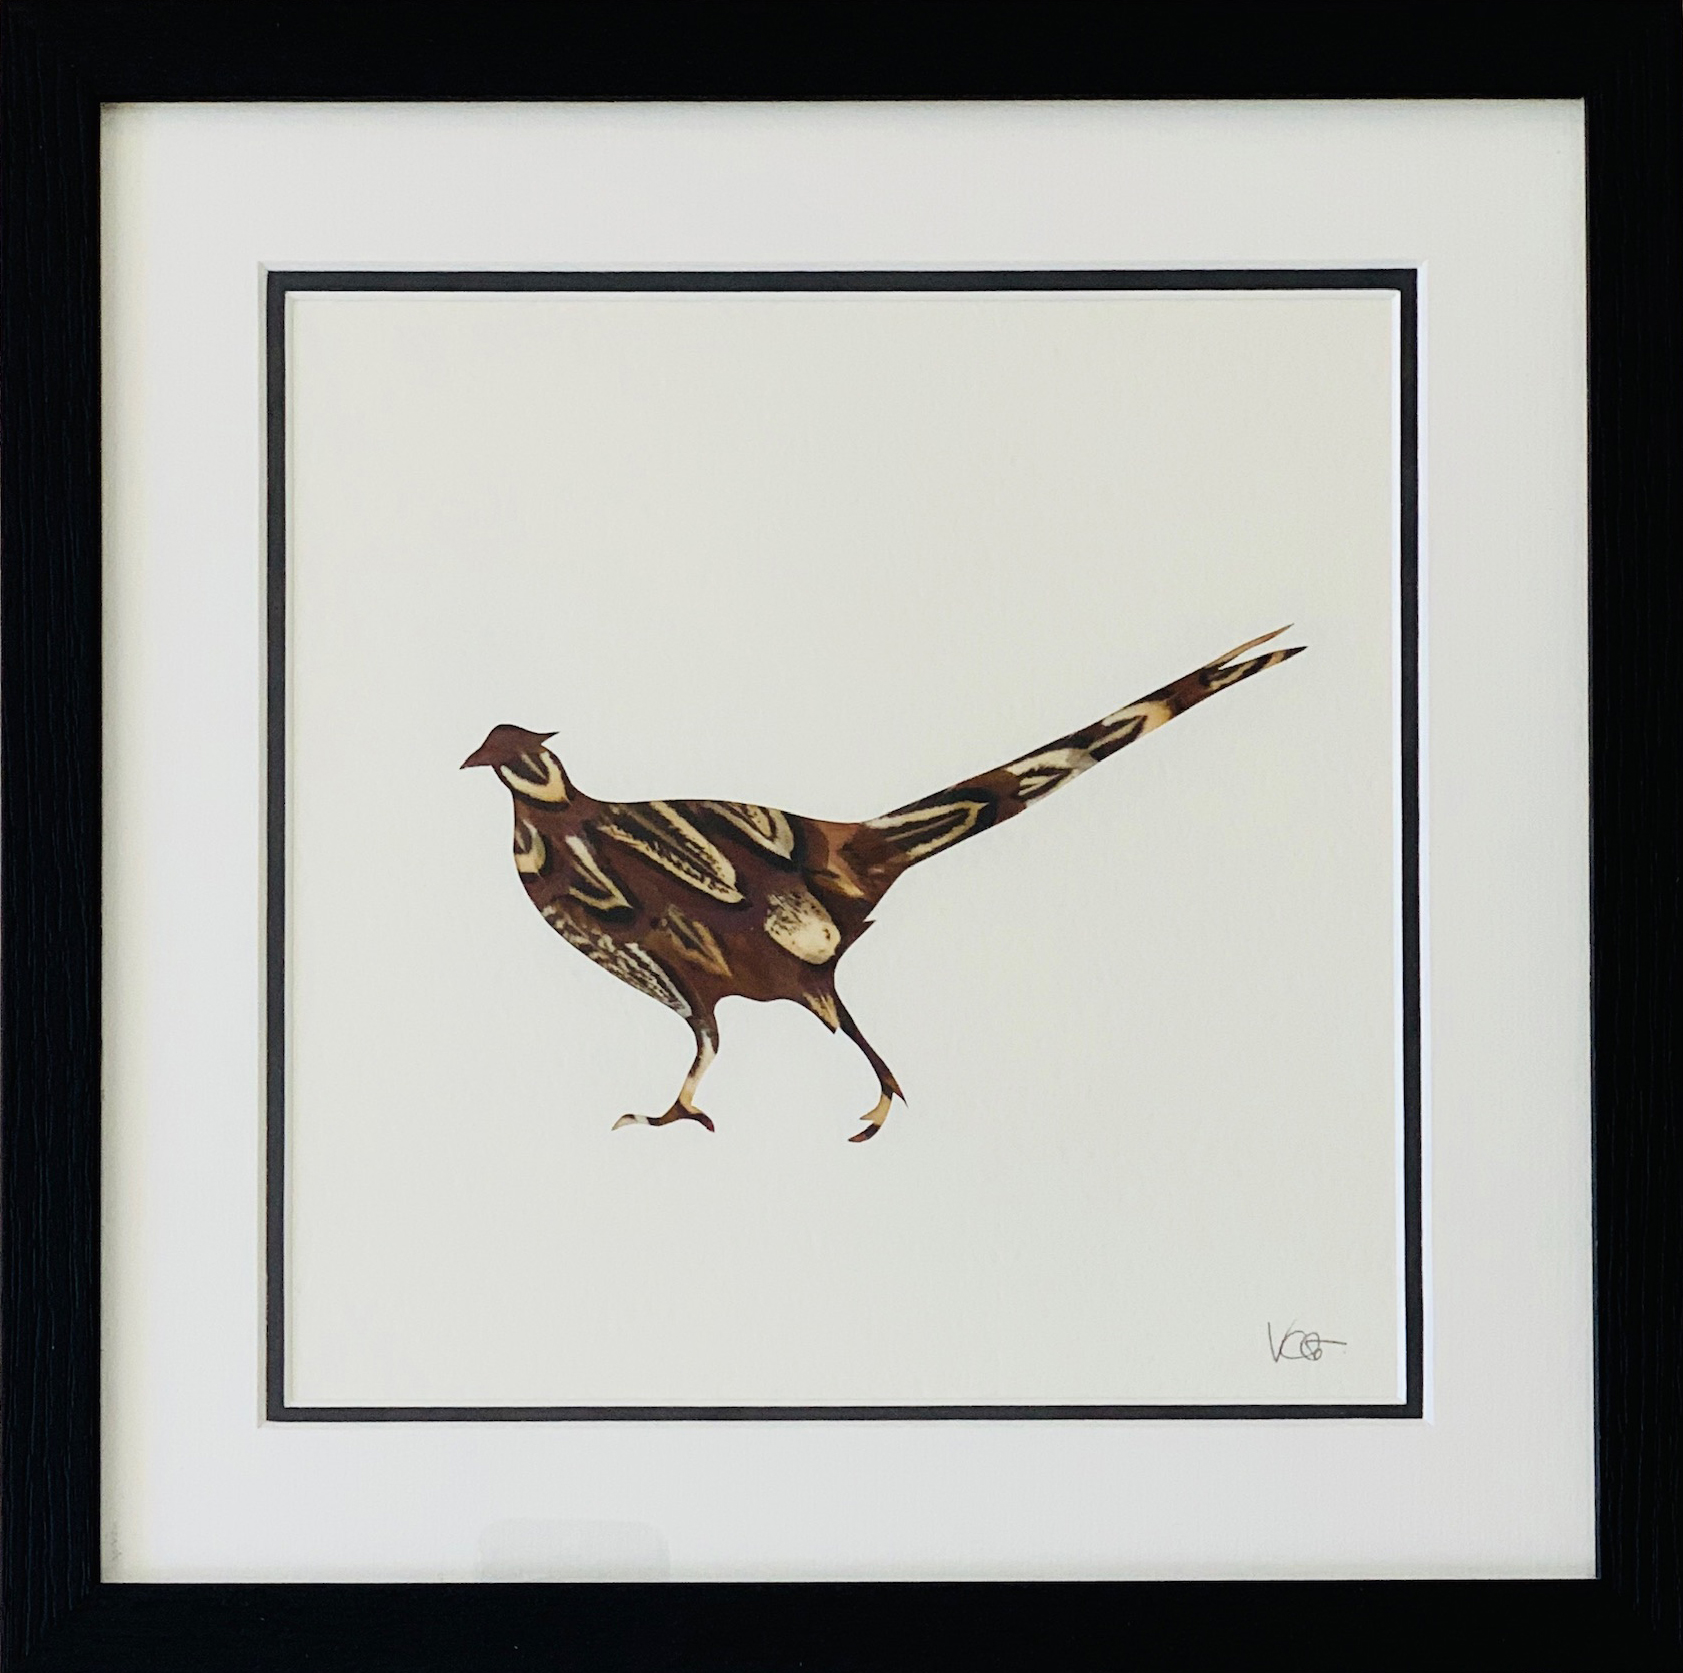 Victoria Chavasse | The Walking Pheasant | Silhouette and feather art | 33x33cm | £95